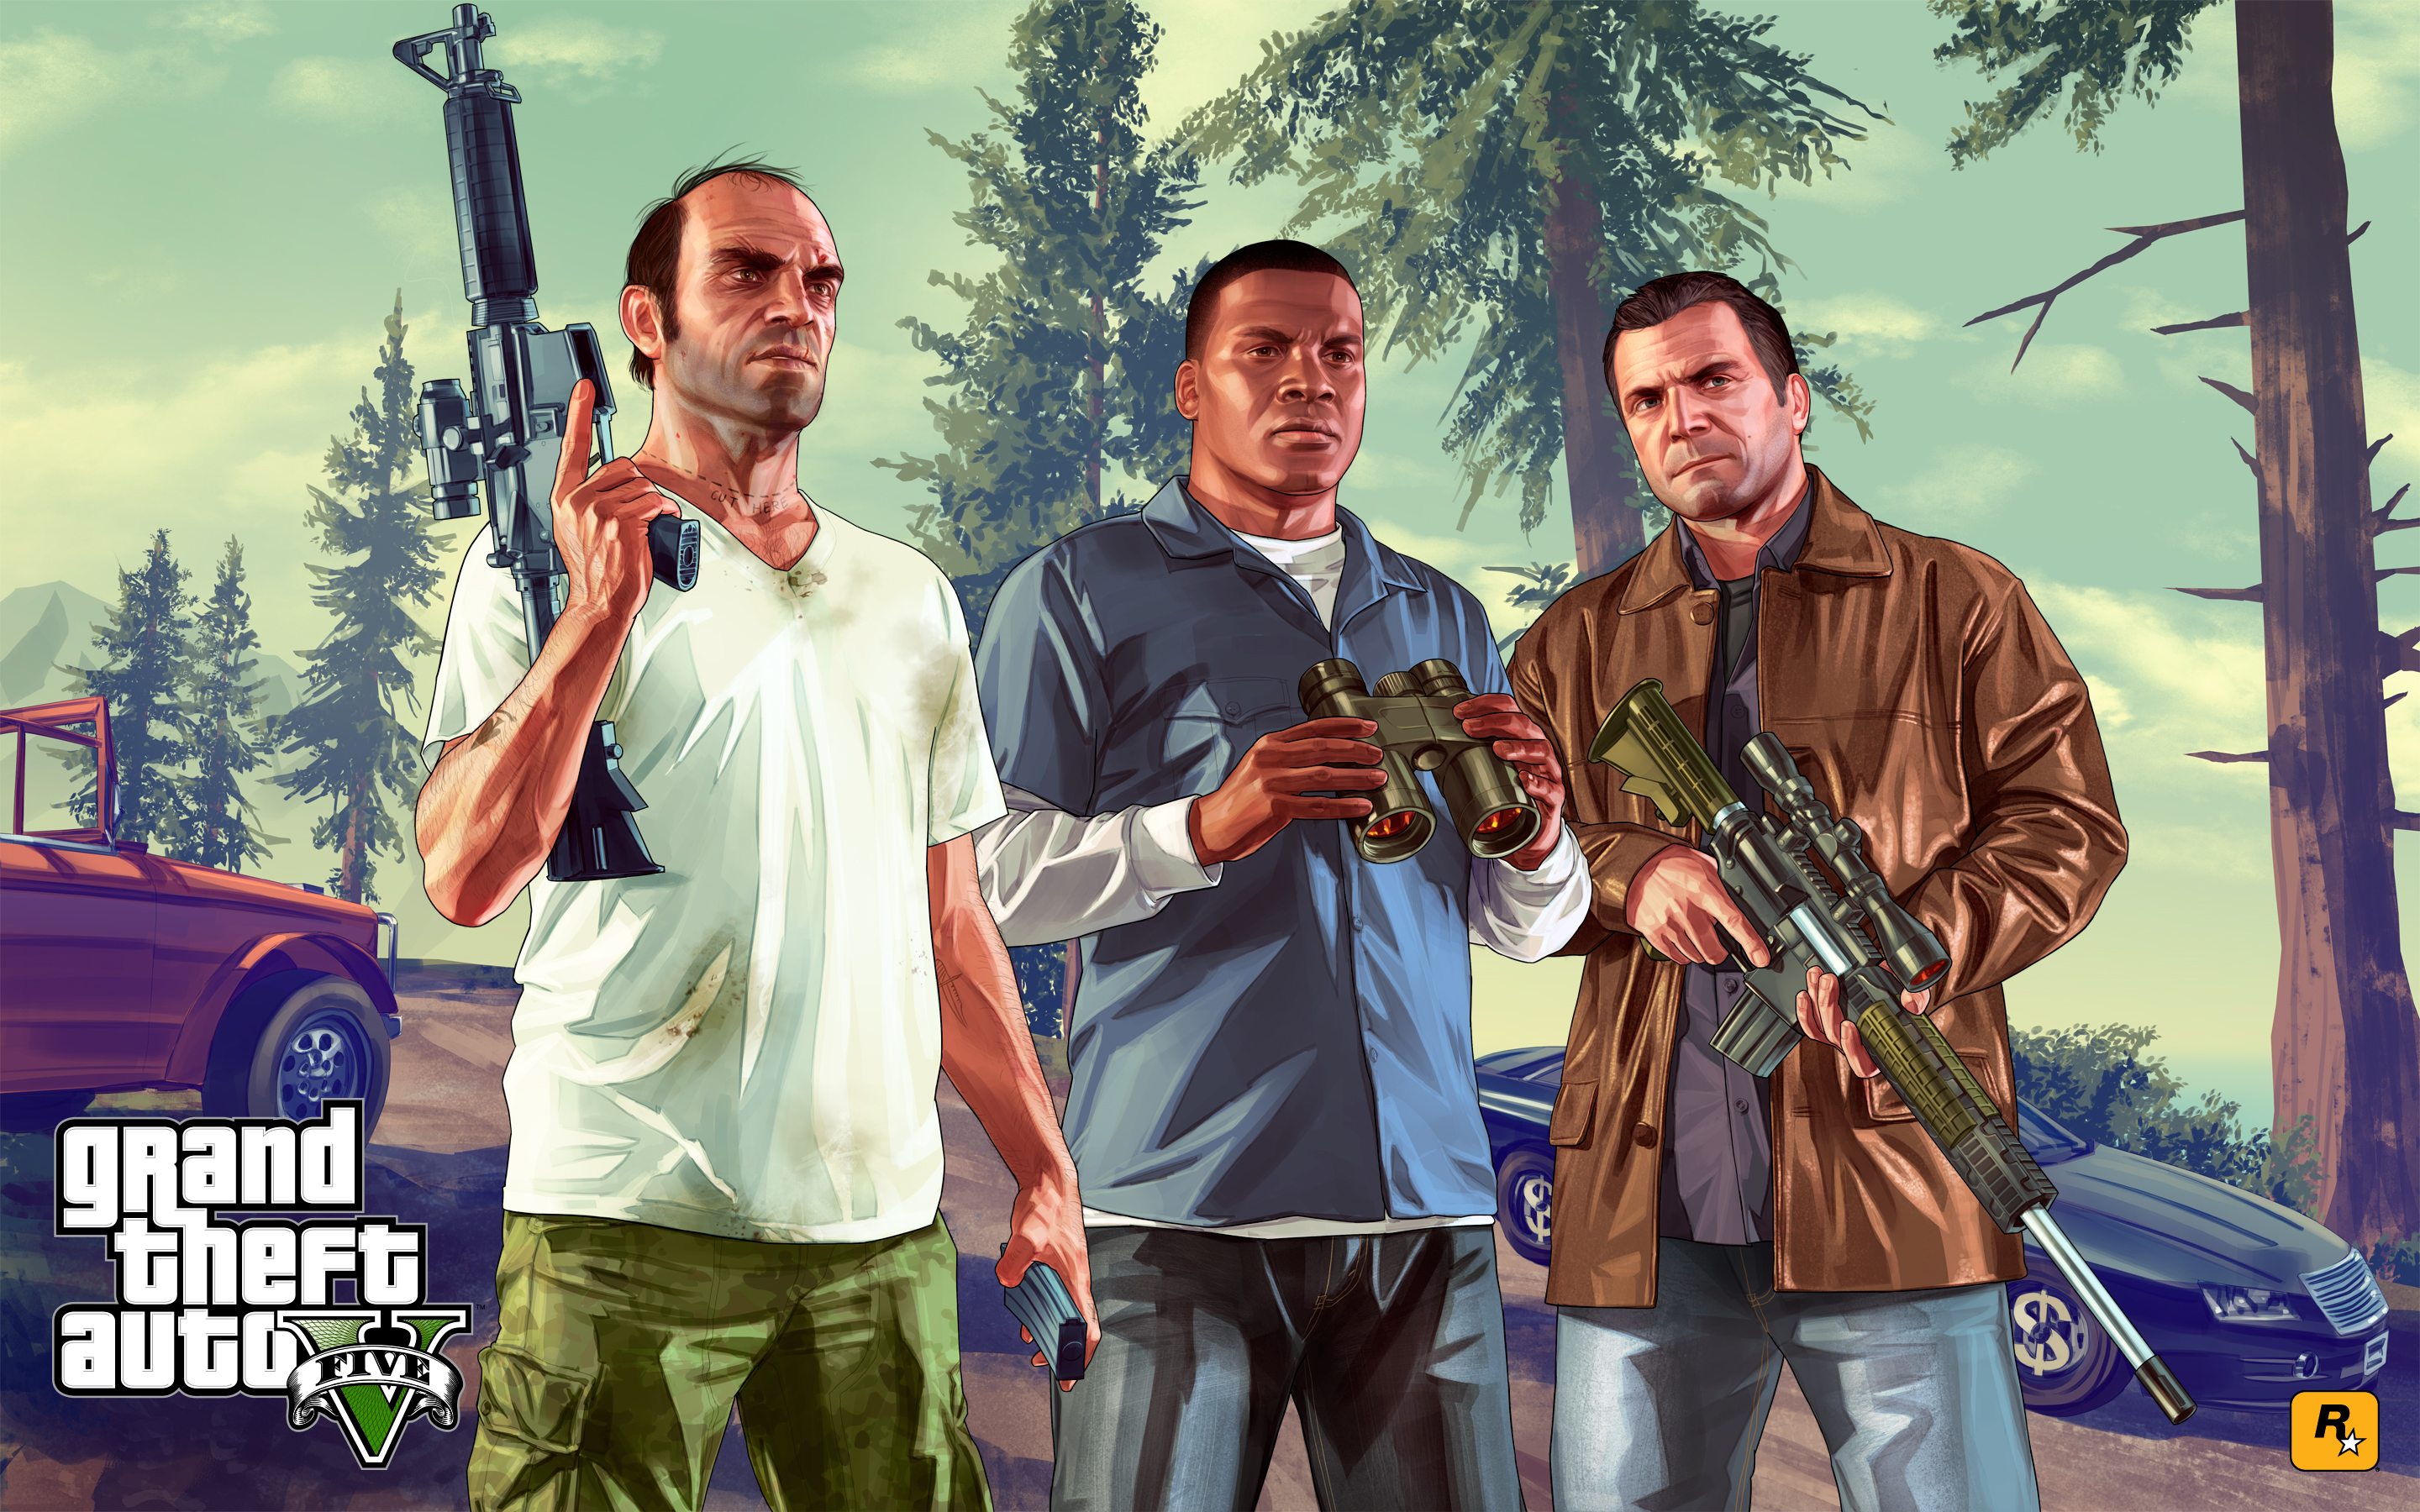 gr theft auto gta 5 wallpapers | wallpapers hd